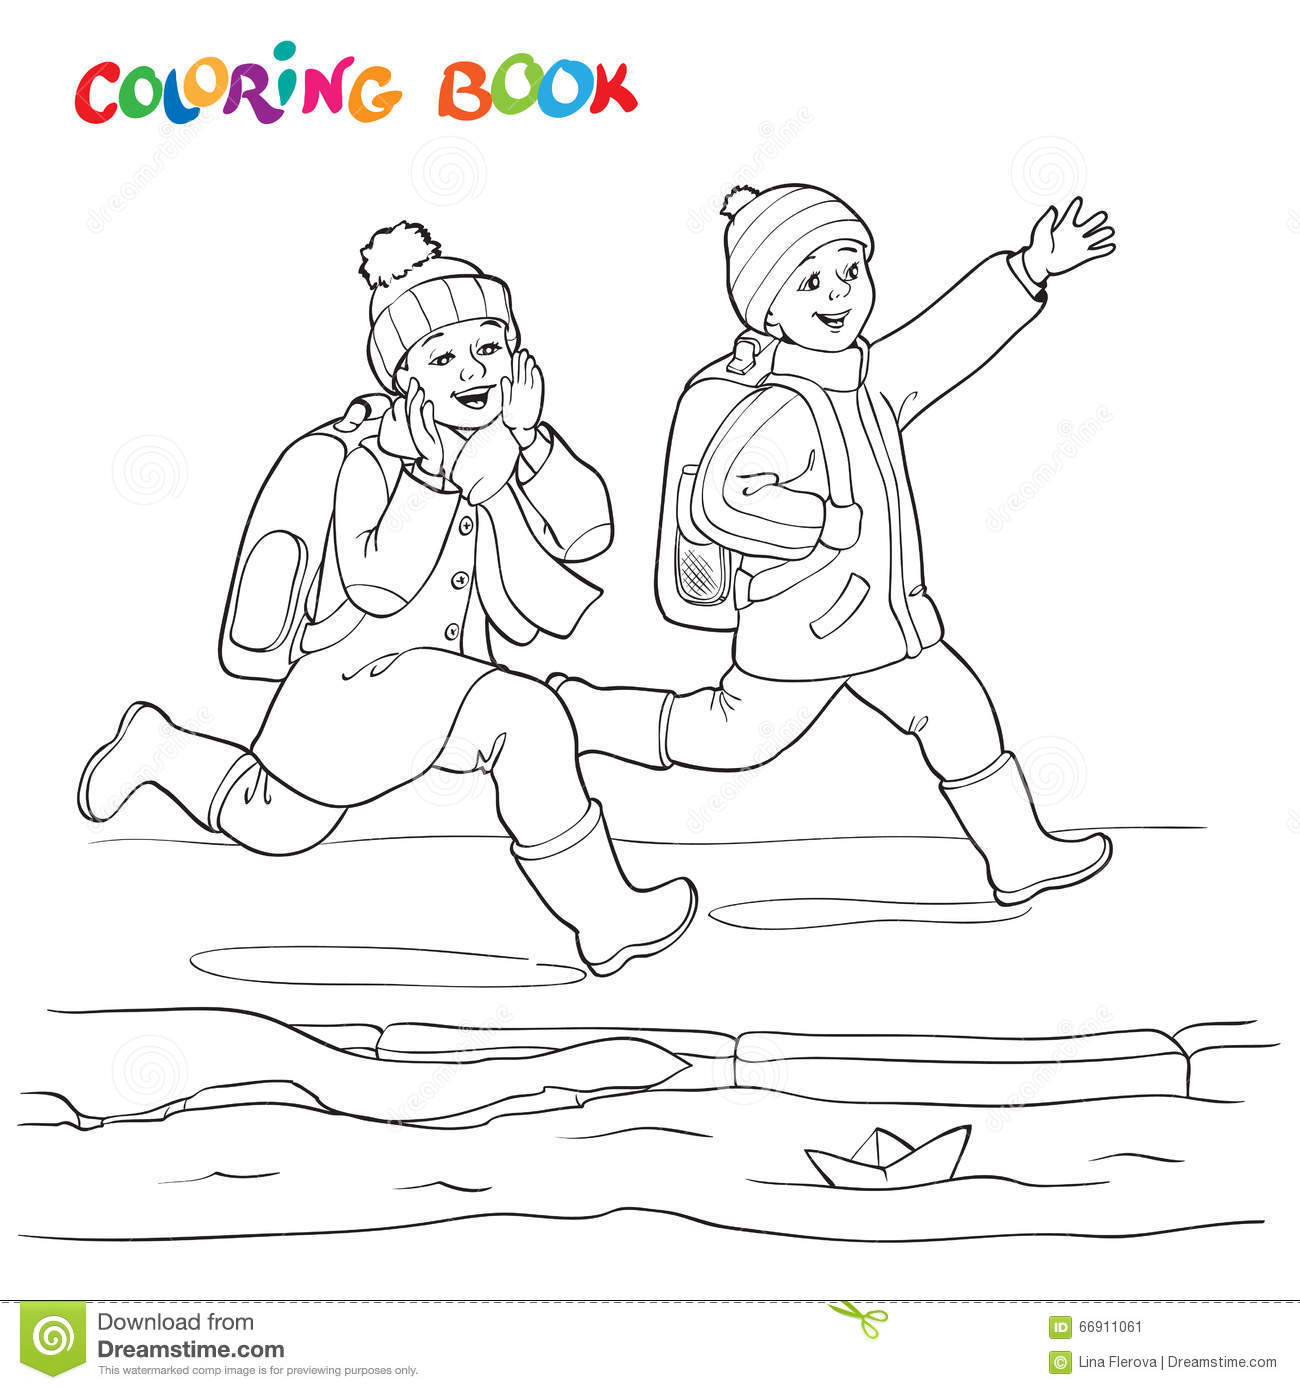 Coloring Book Or Page. Two Joyful Boys Running Along The